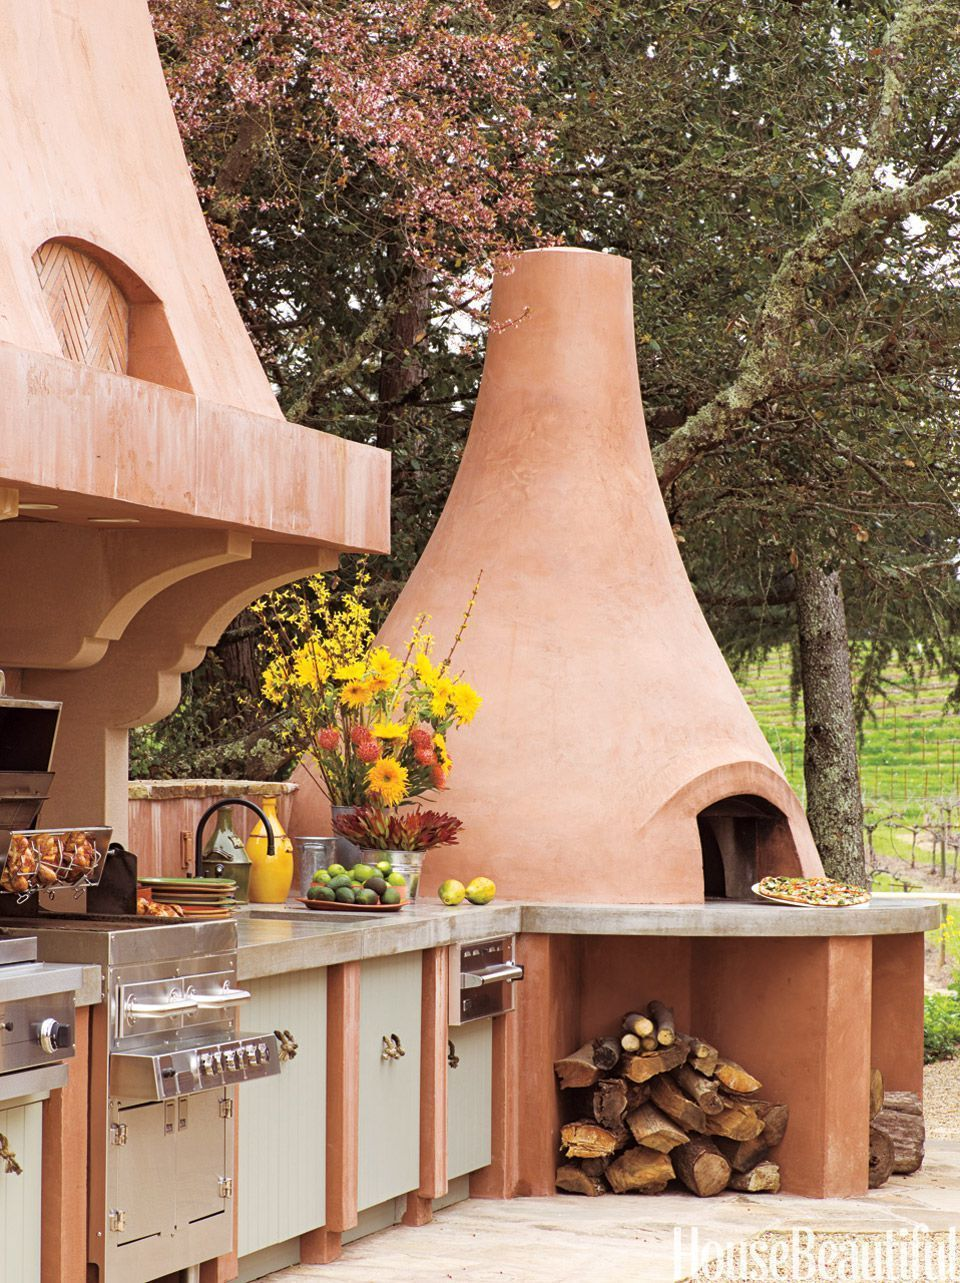 Best Amazing Outdoor Kitchen Ideas Design For Small Space On A Budget Outdoor Kitchen Decor Rustic Outdoor Kitchens Outdoor Kitchen Design